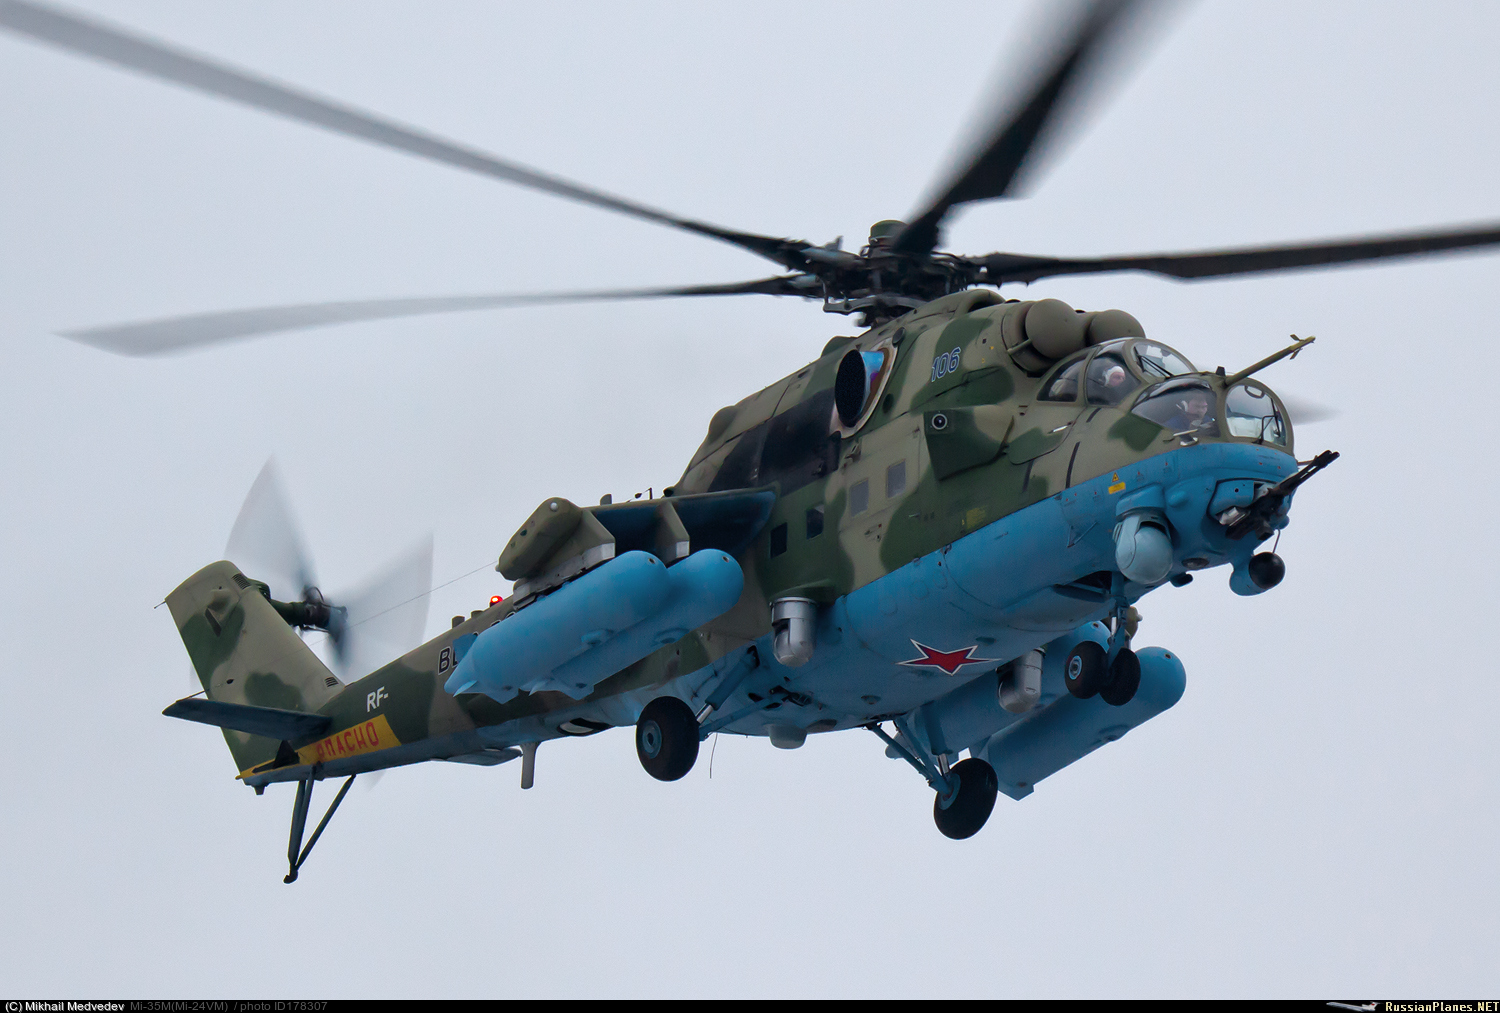 http://russianplanes.net/images/to179000/178307.jpg